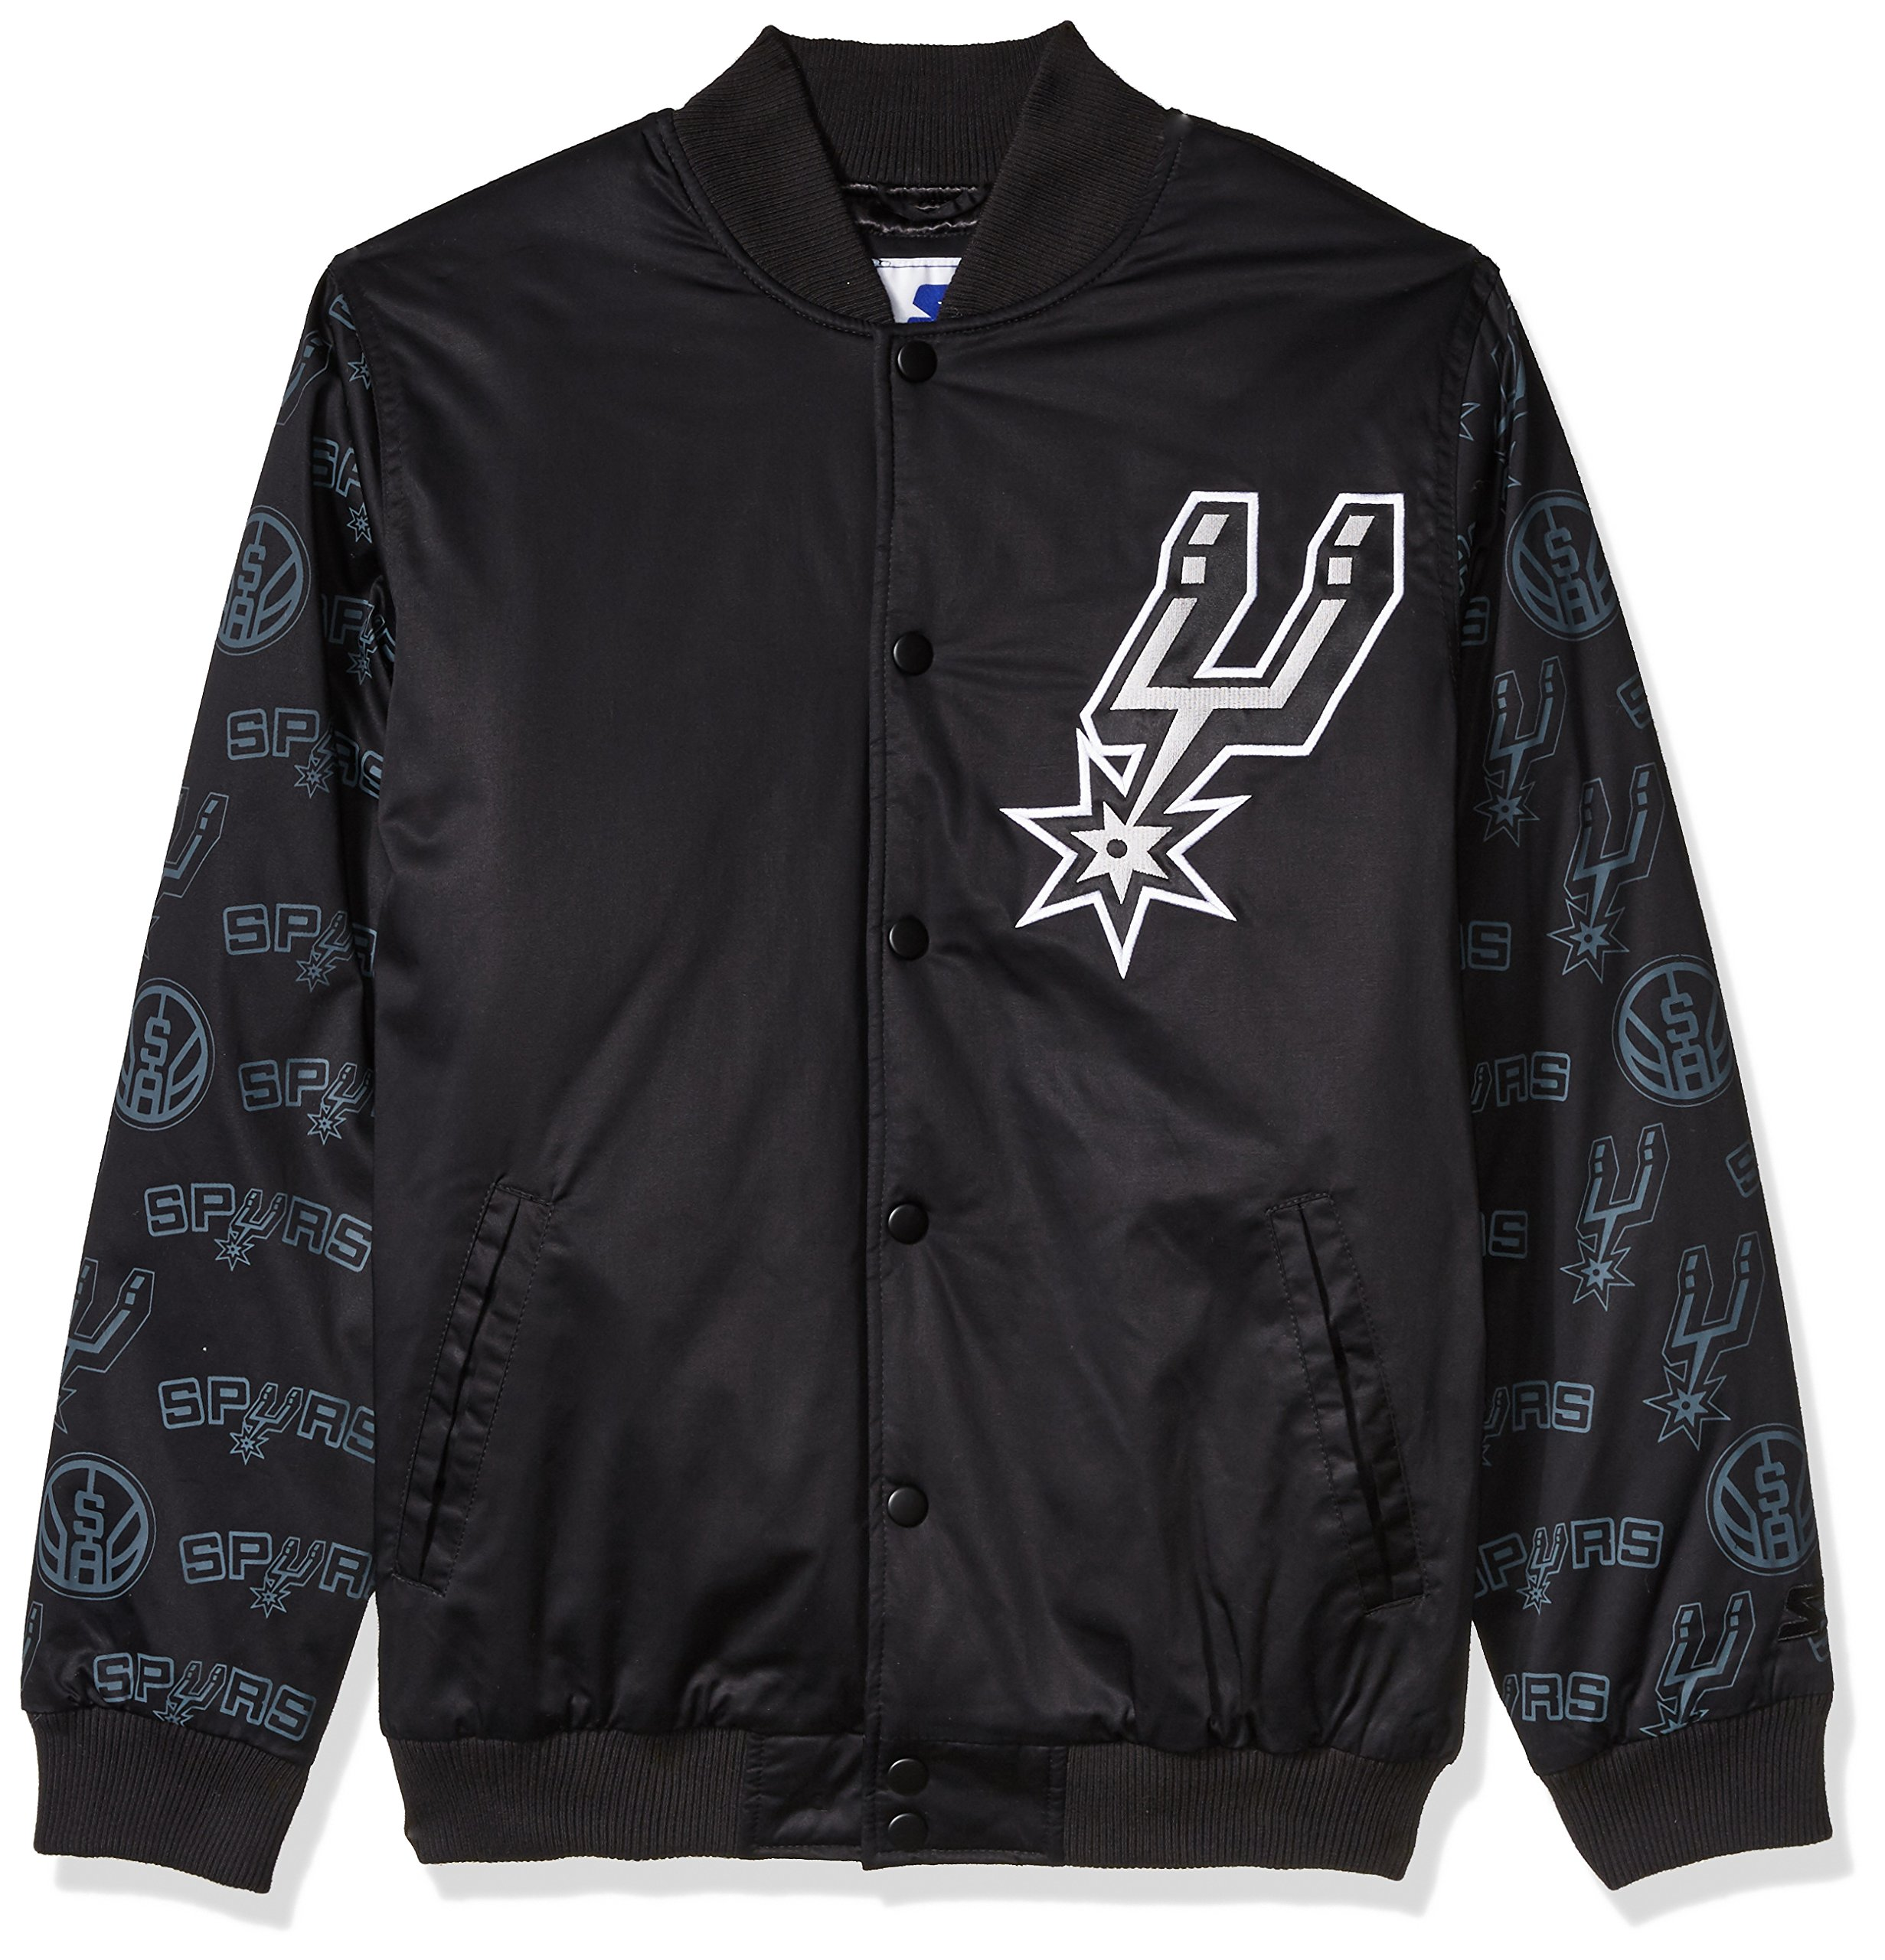 STARTER NBA San Antonio Spurs Men's Varsity Bomber Jacket, X-Large, Black by STARTER (Image #1)